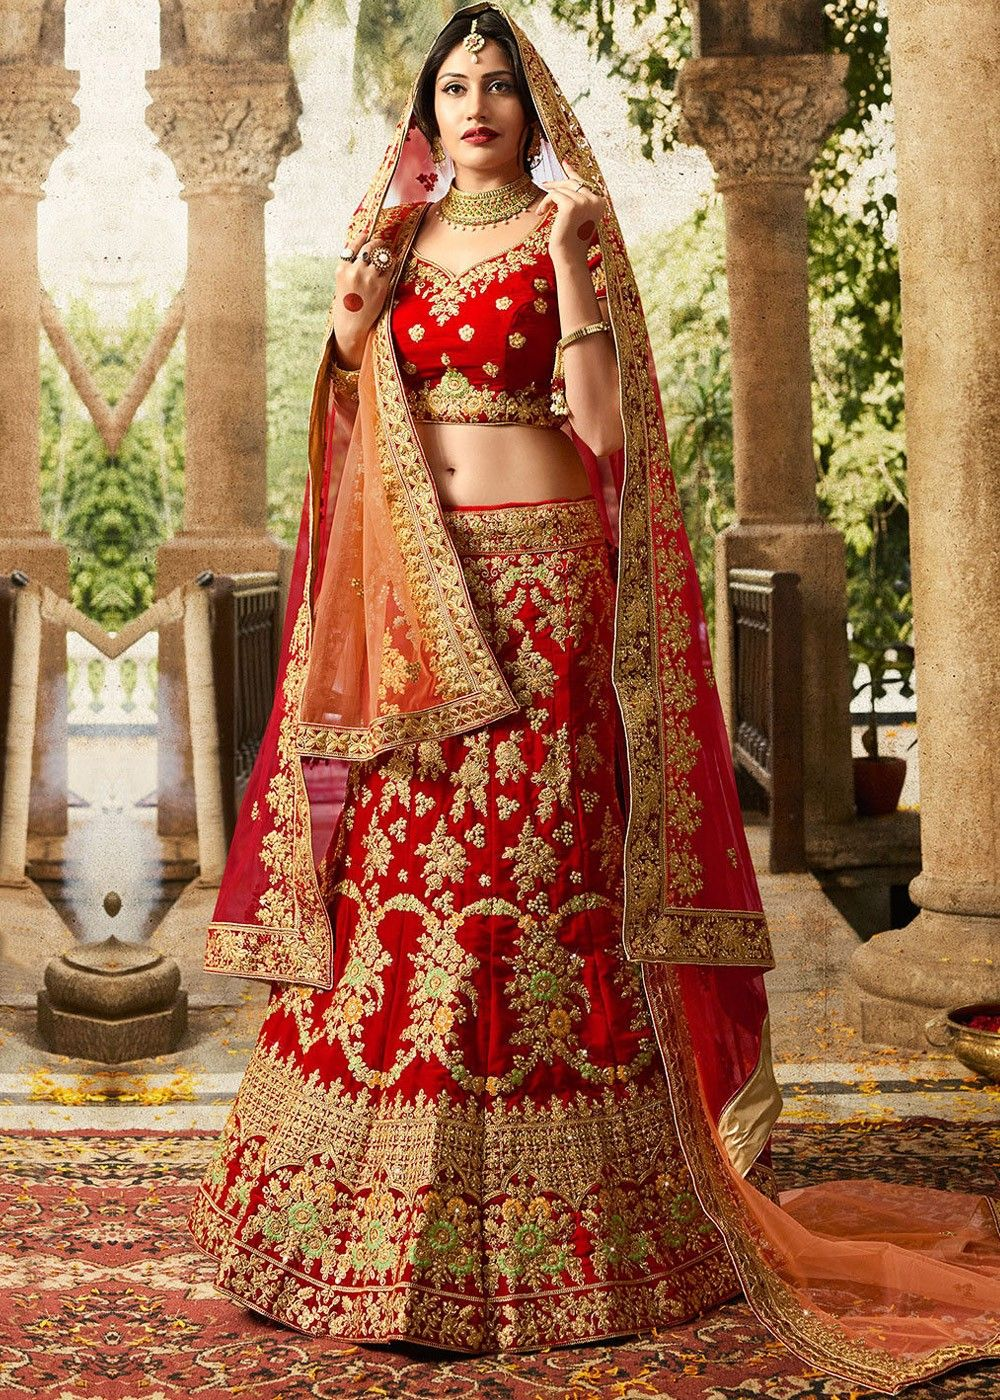 fa1e376816 Red Velvet Bridal Lehenga Choli with Dupatta | Latest Bridal Lehenga ...